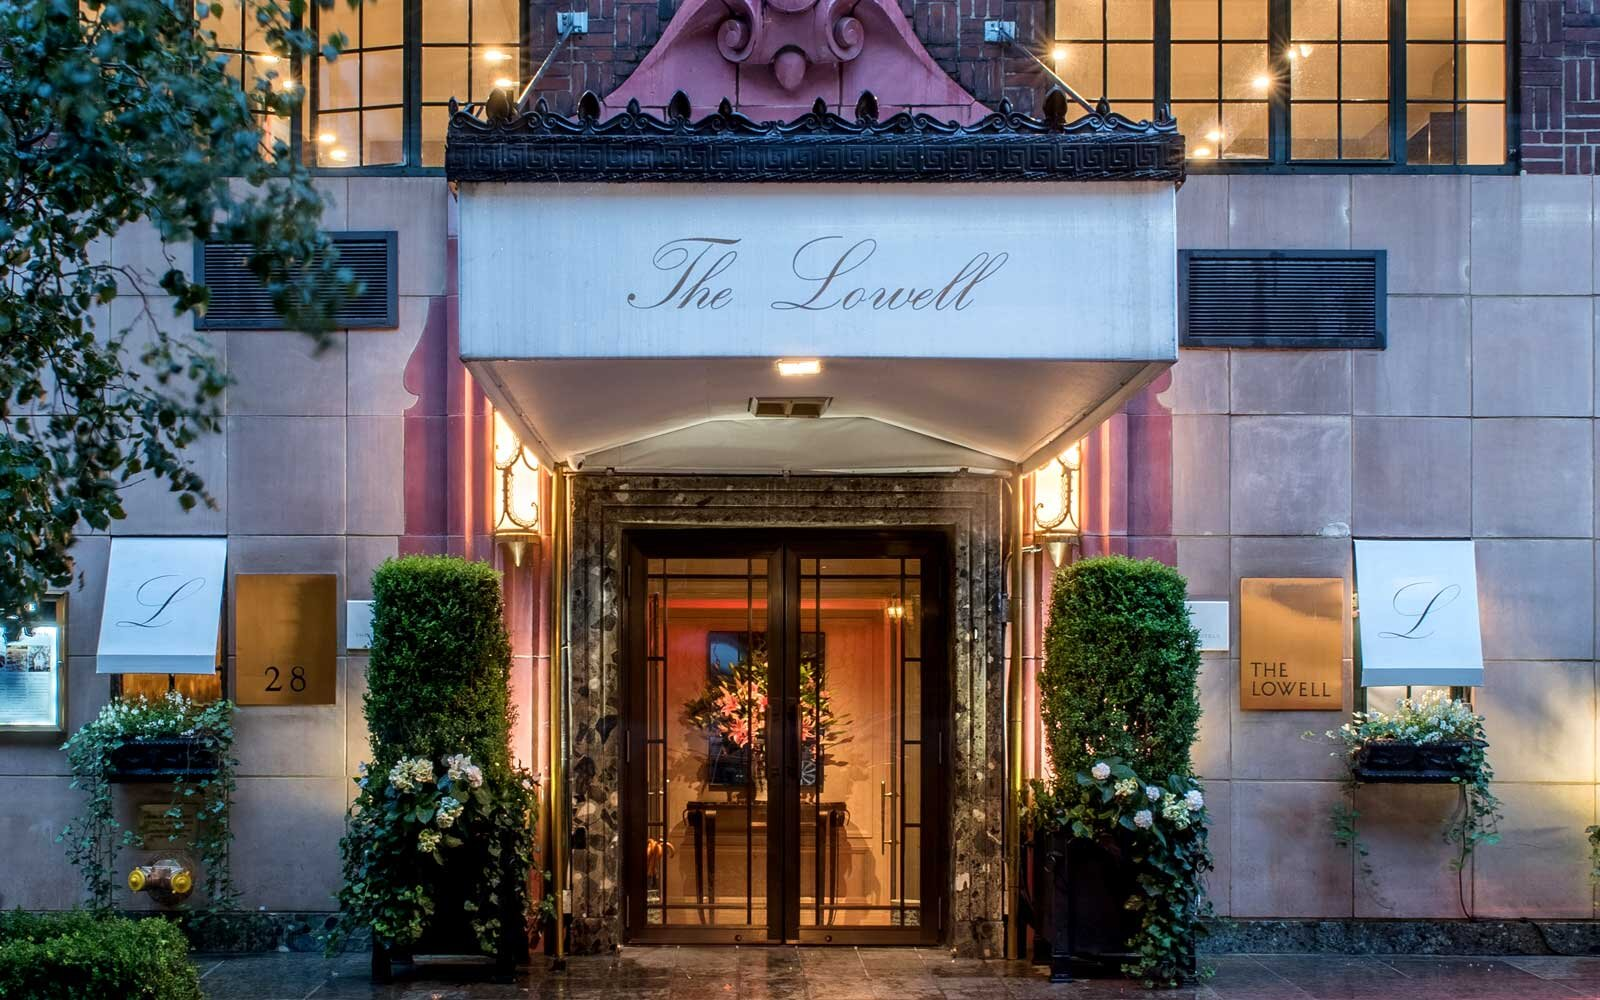 The Lowell Is The Best Hotel In New York City According To Travel Leisure Readers Travel Leisure